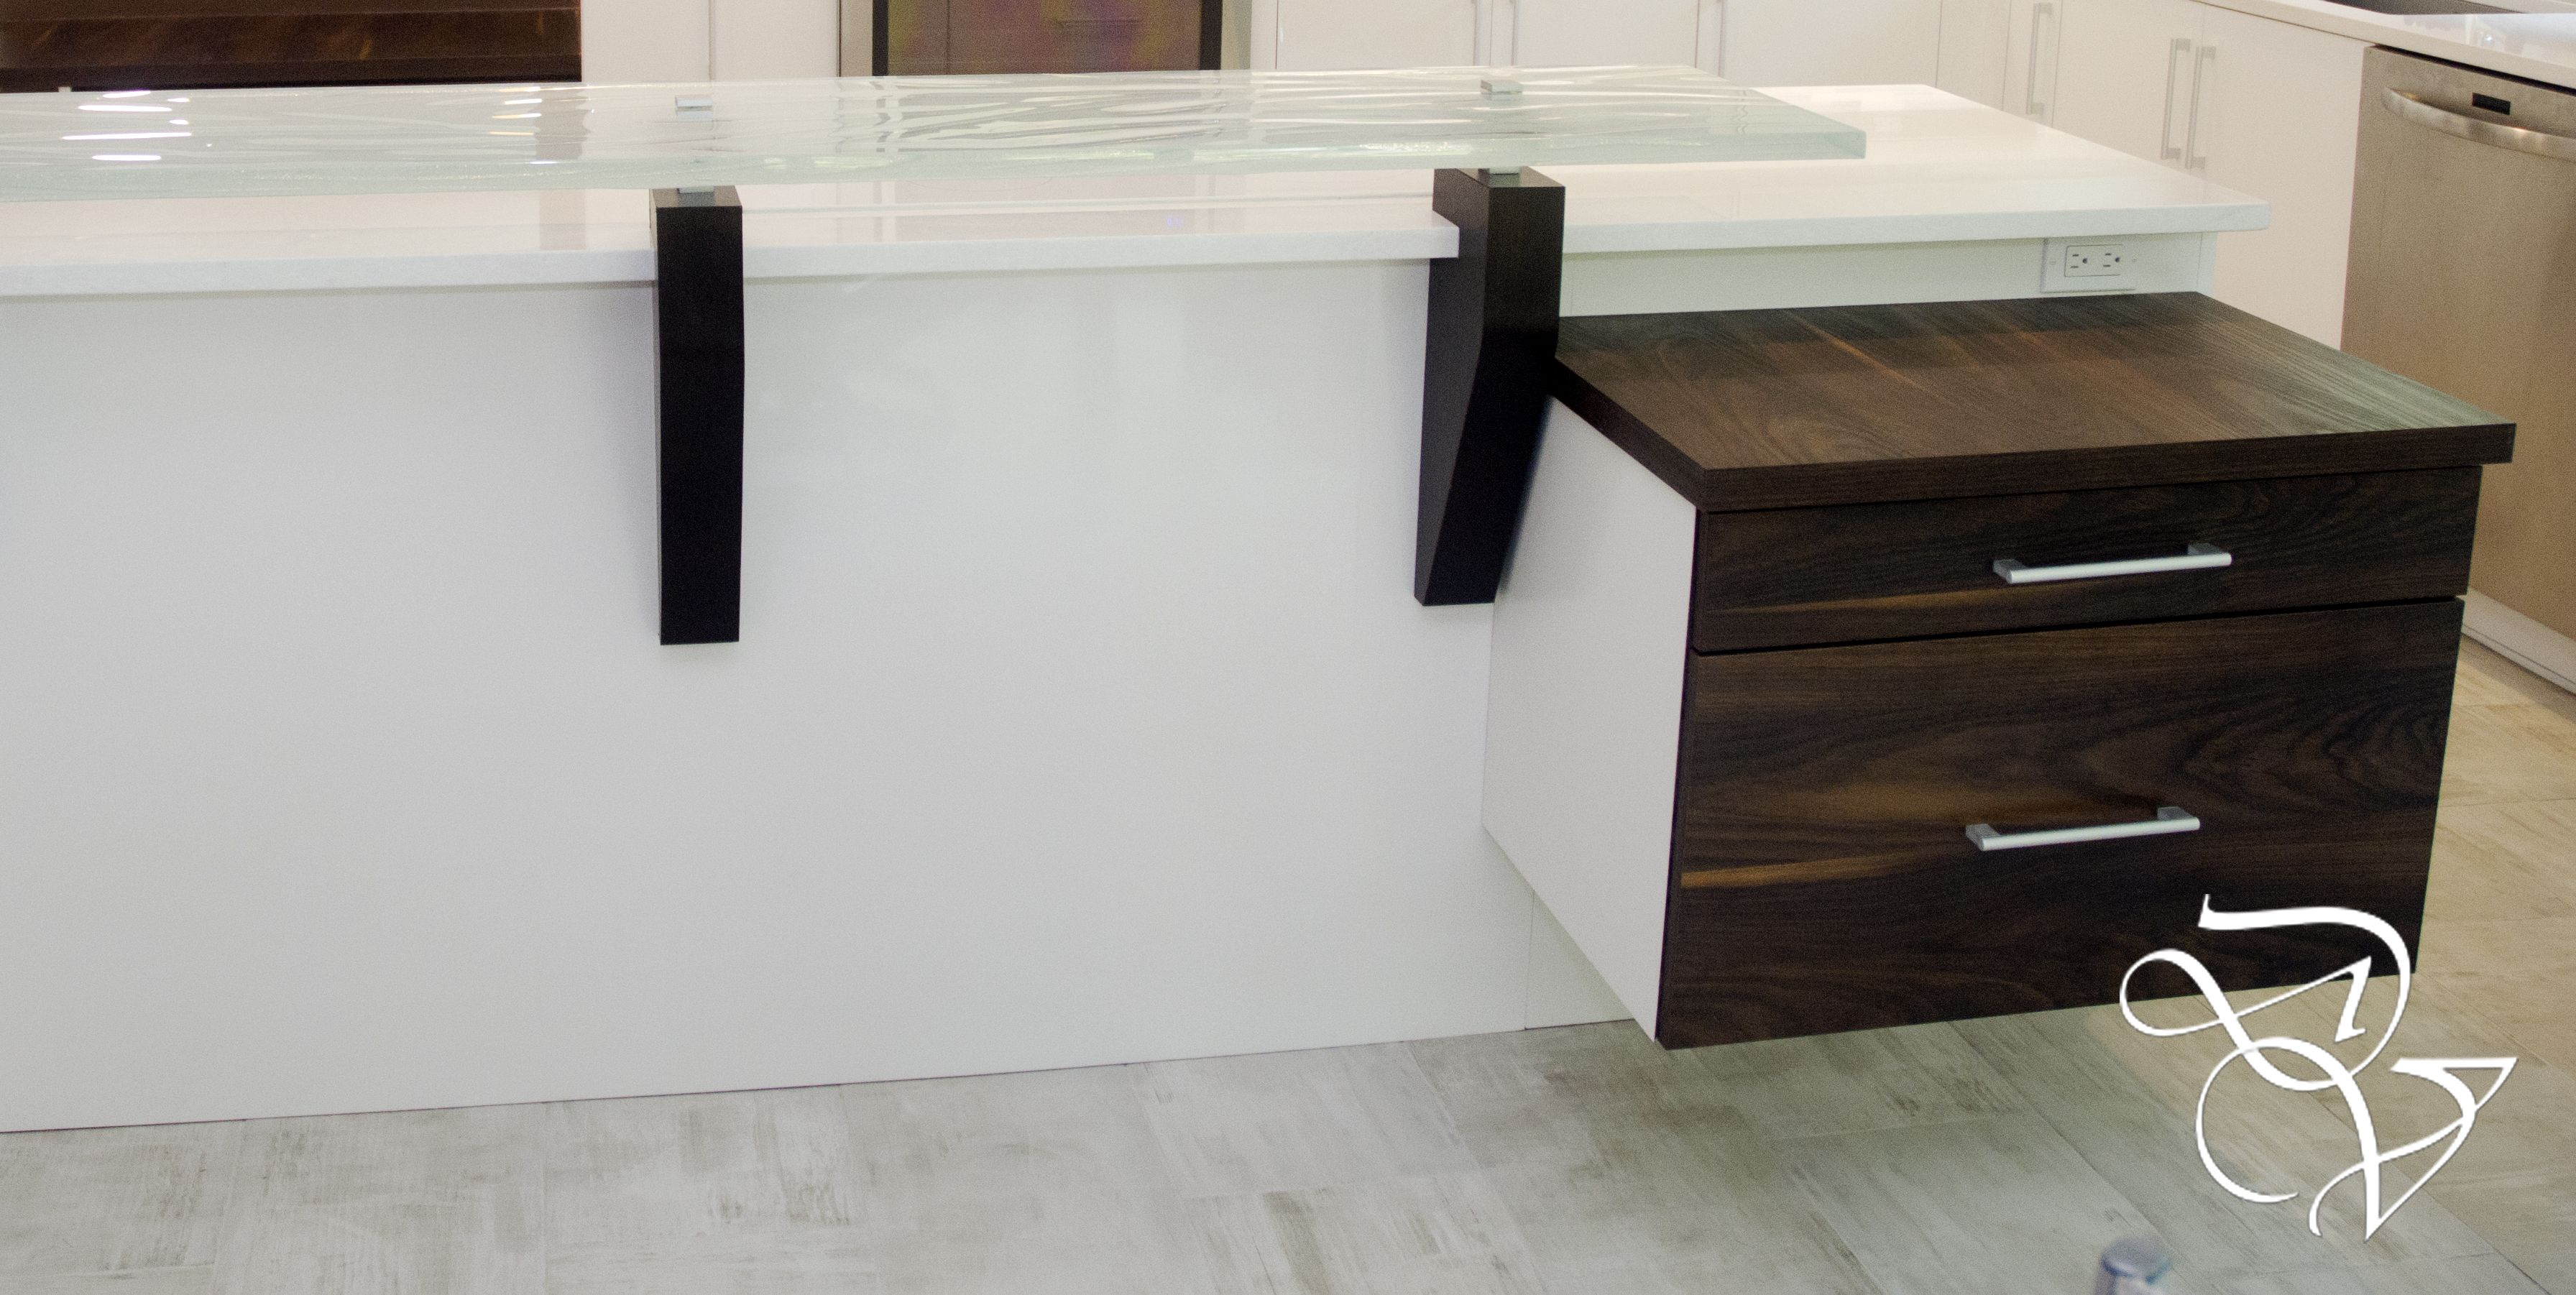 Concealed filing cabinet in two-toned kitchen by Da Vinci ...